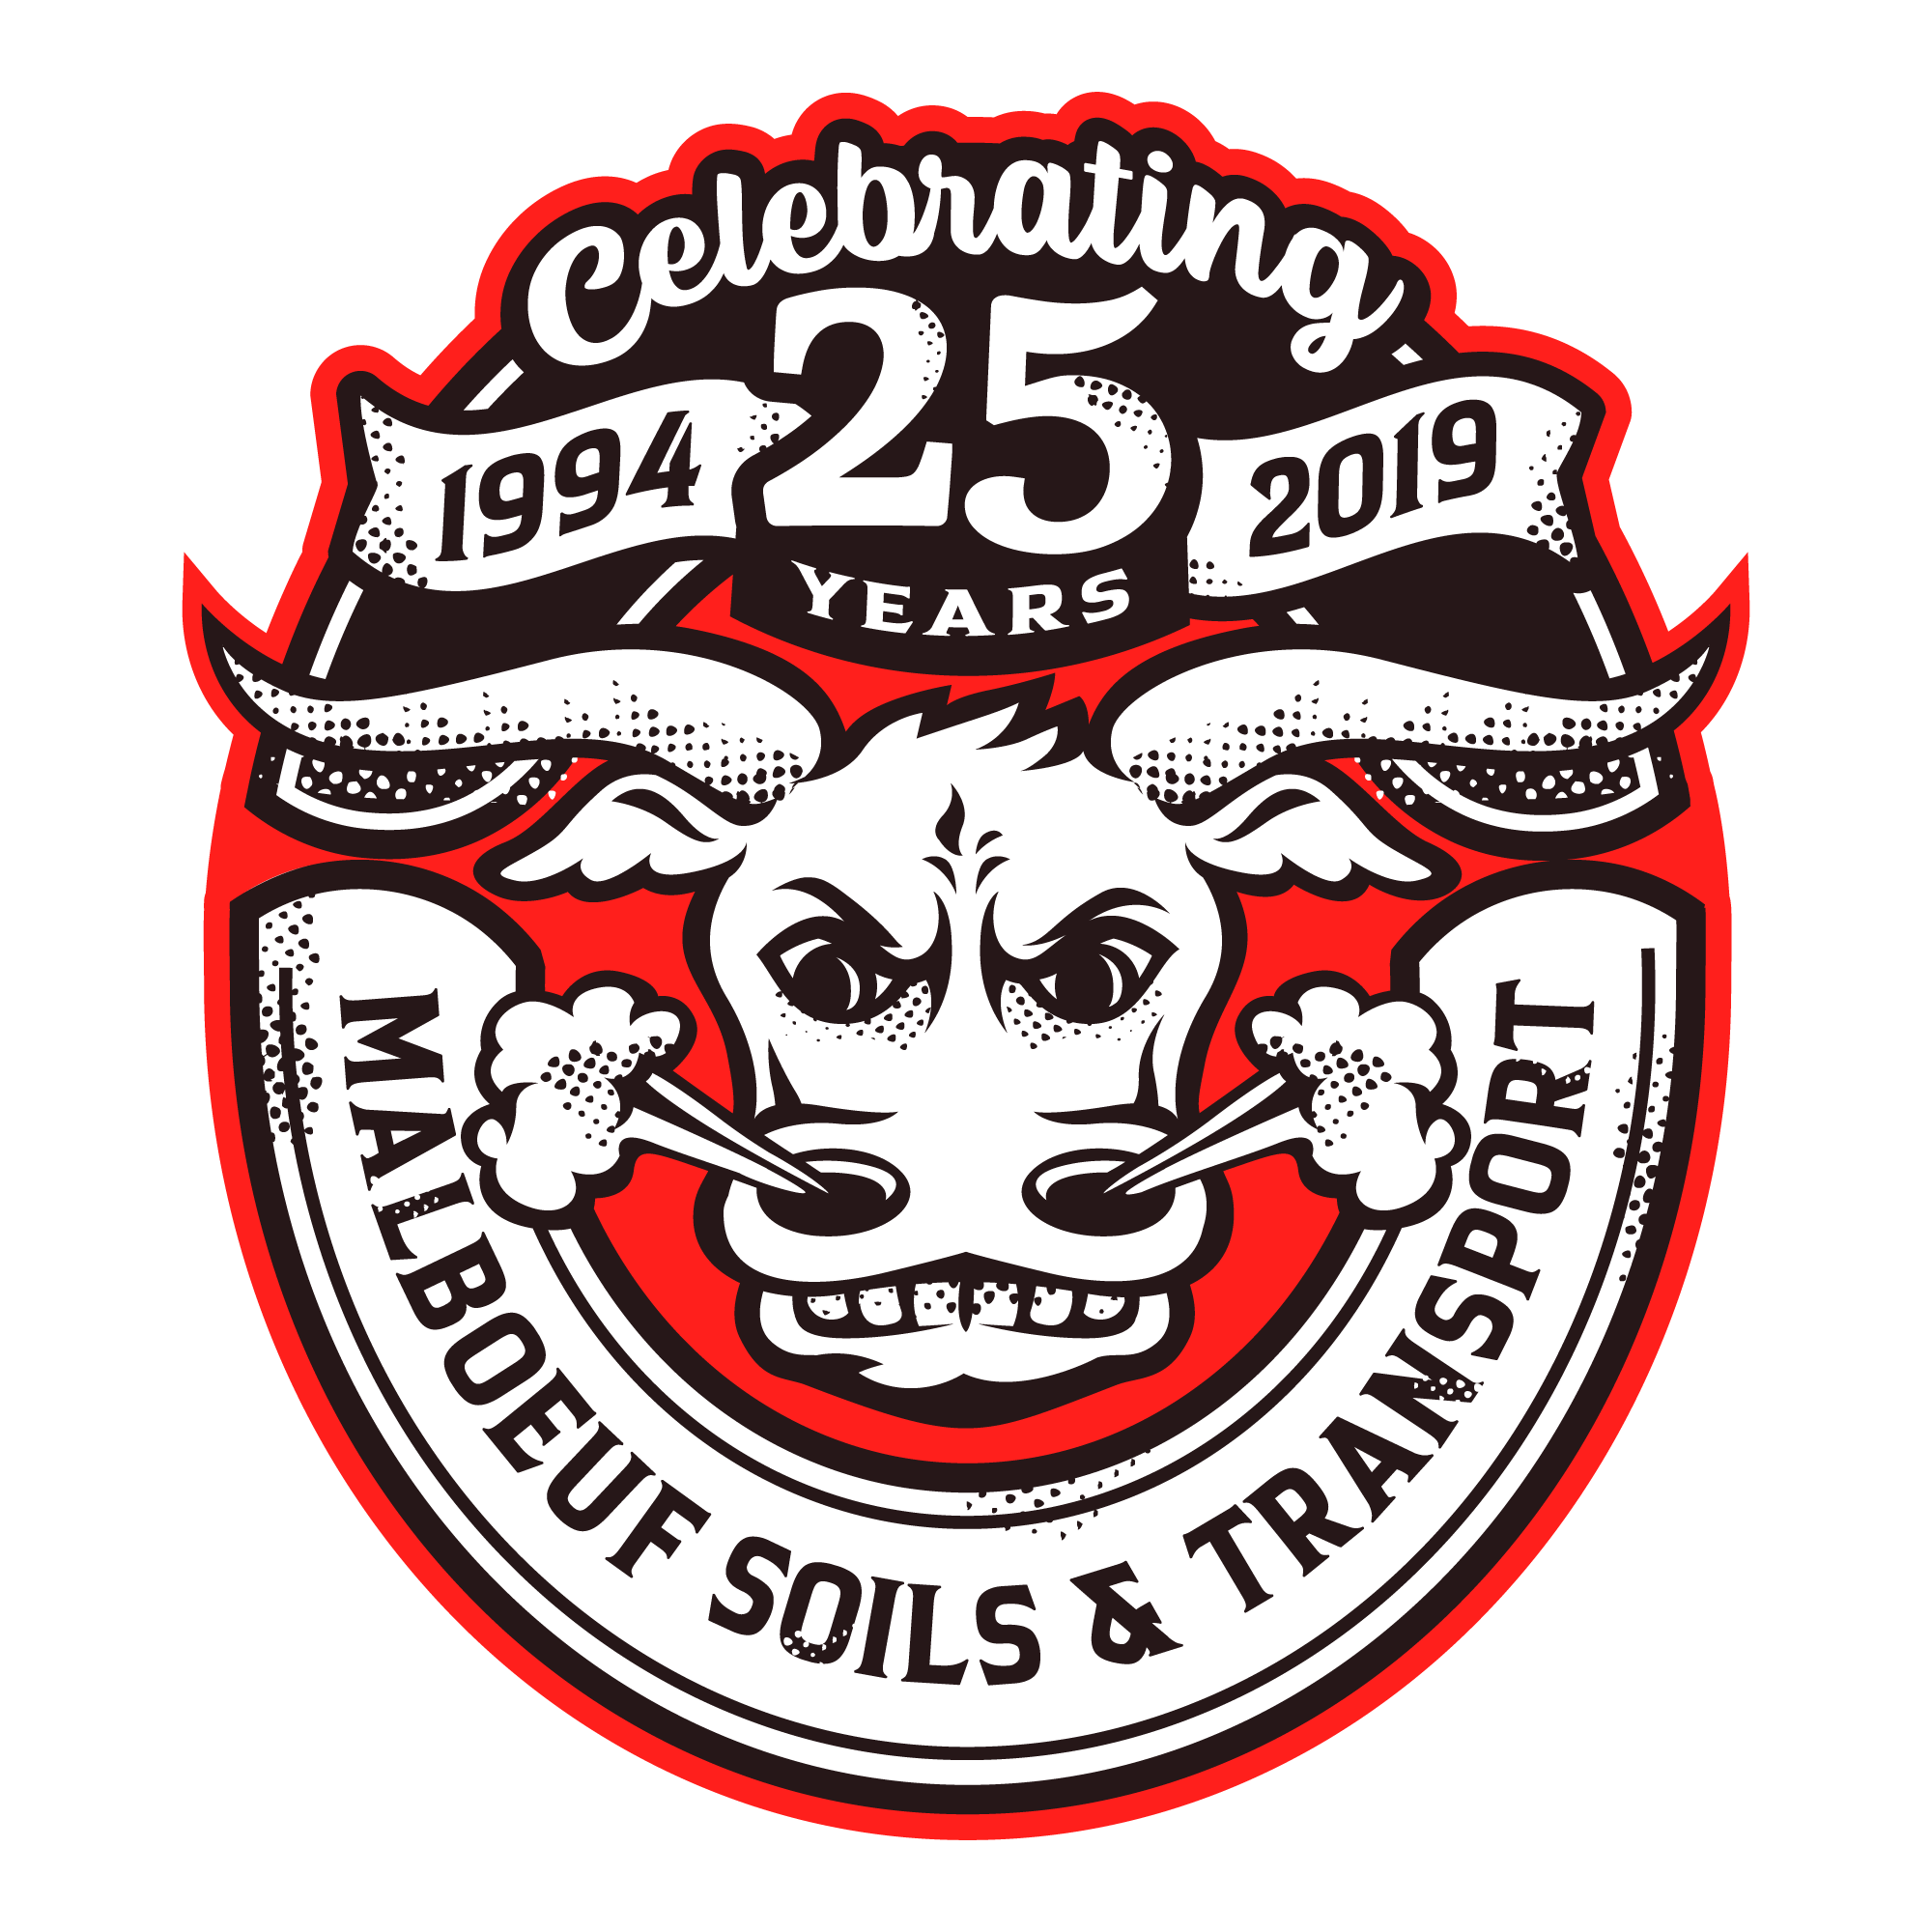 New logo for the 25 years anniversary of the business